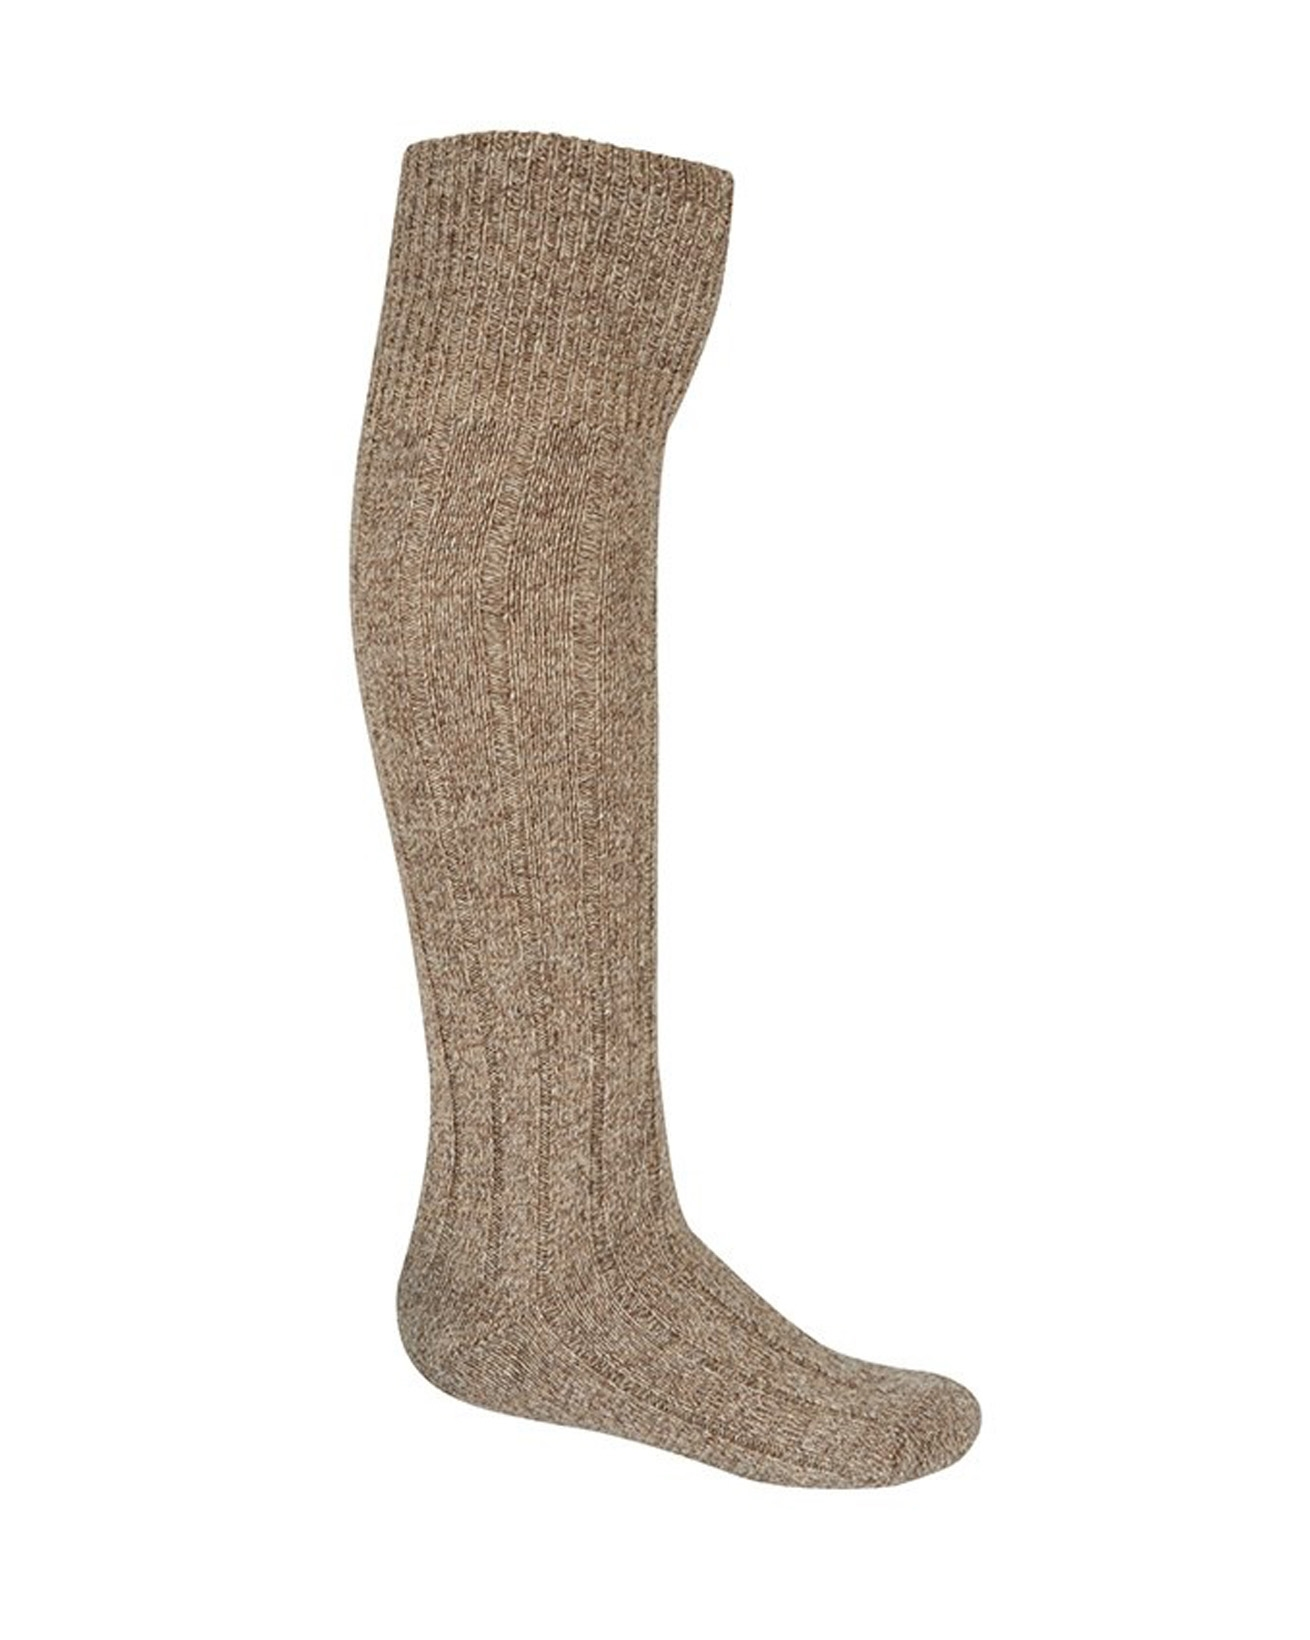 7103-mens-boot-socks-oatmeal.jpg